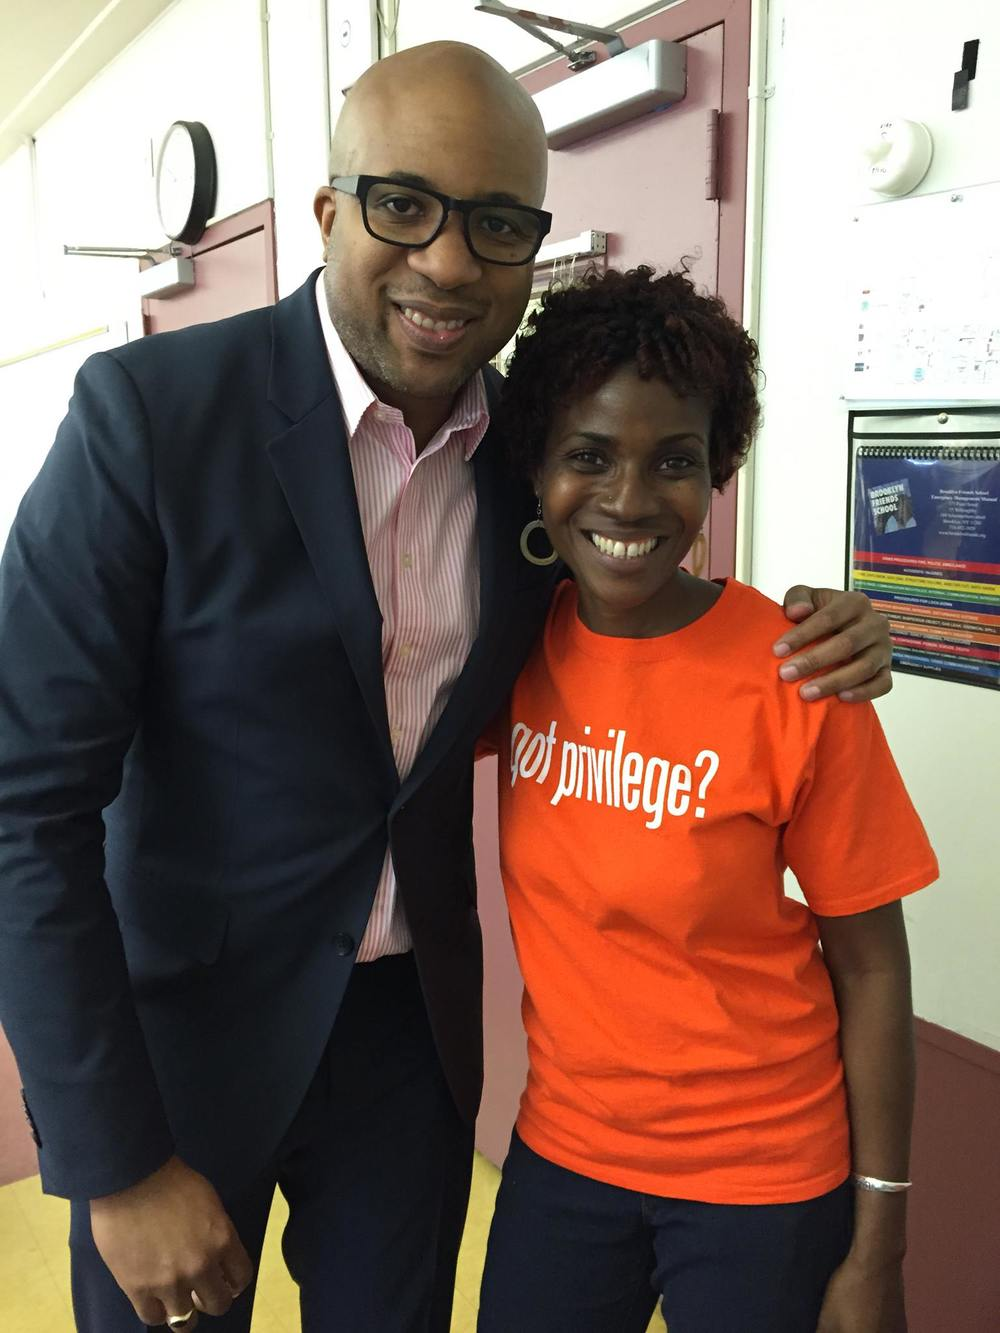 Celebrating a terrific Privilege Day with Orinthia Swindell, Director of Diversity at Brooklyn Friends School (NY)